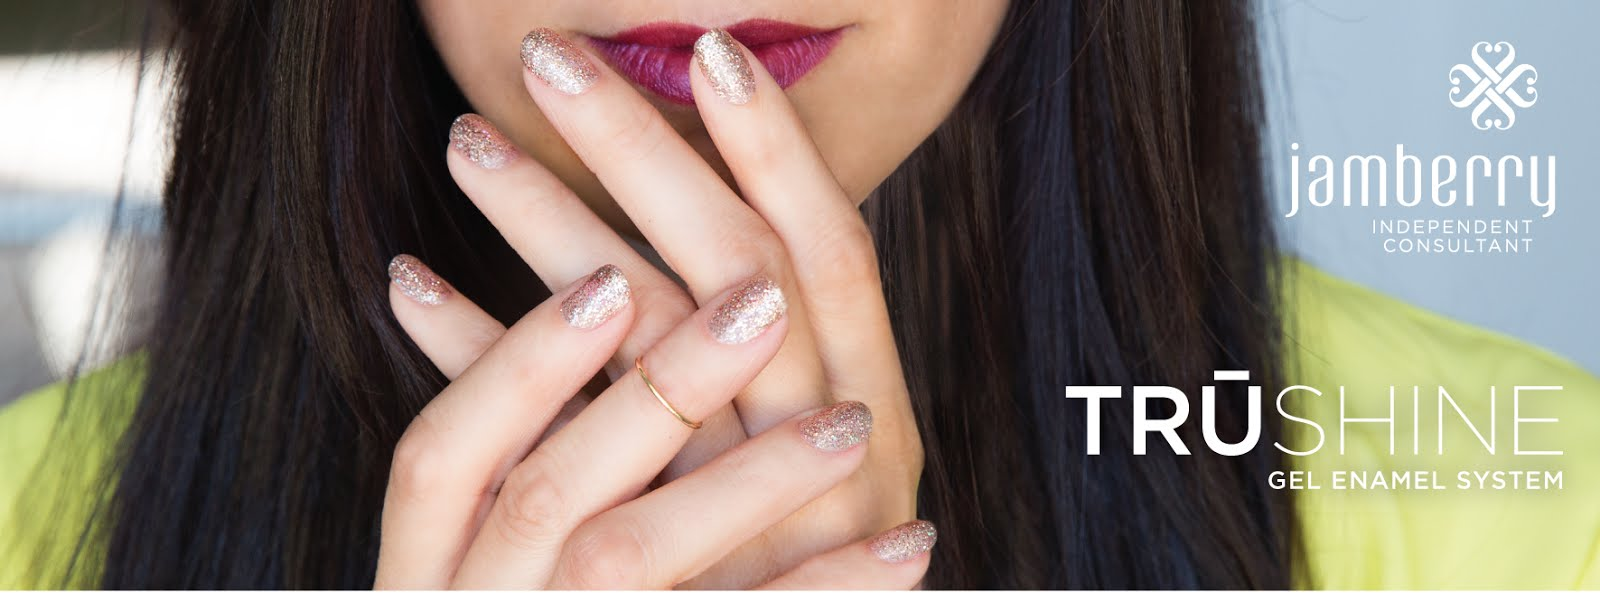 Abbey -Jamberry Independent Consultant